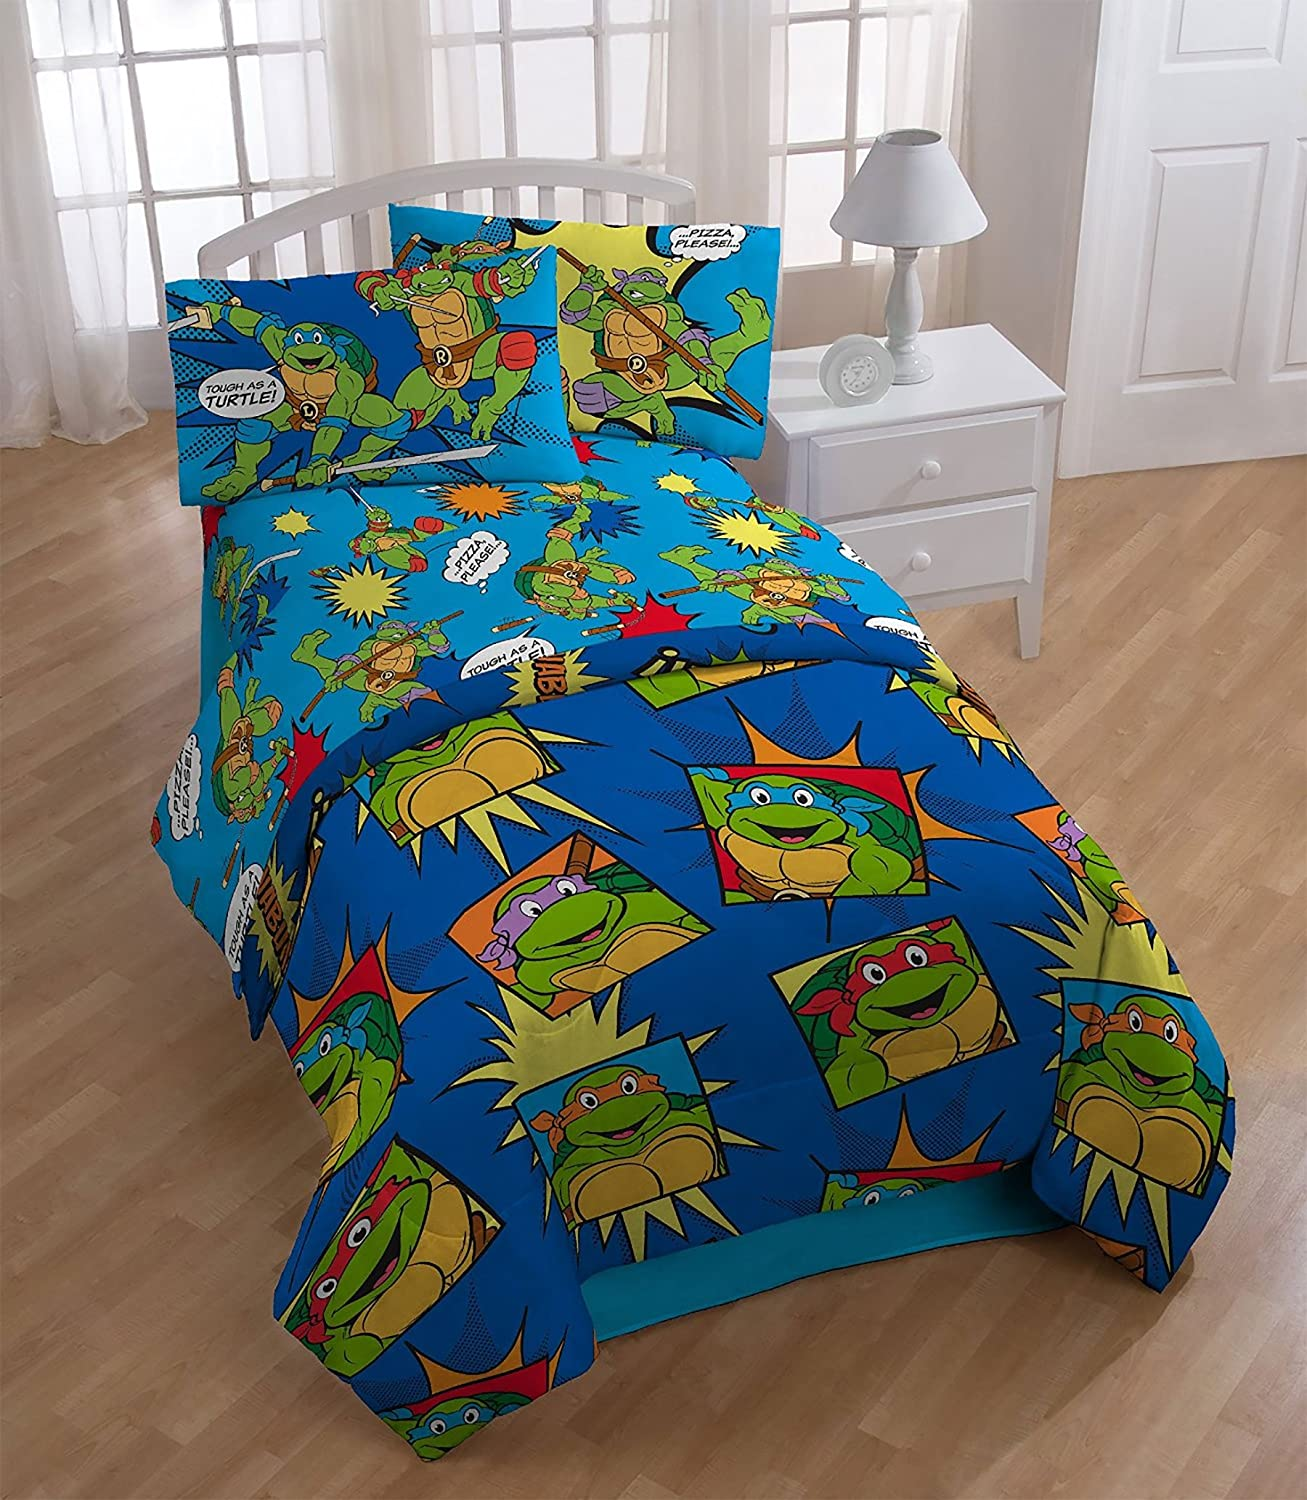 4pc Teenage Mutant Ninja Turtles Twin Bedding Set TMNT Team Turtles Comforter and Sheet Set